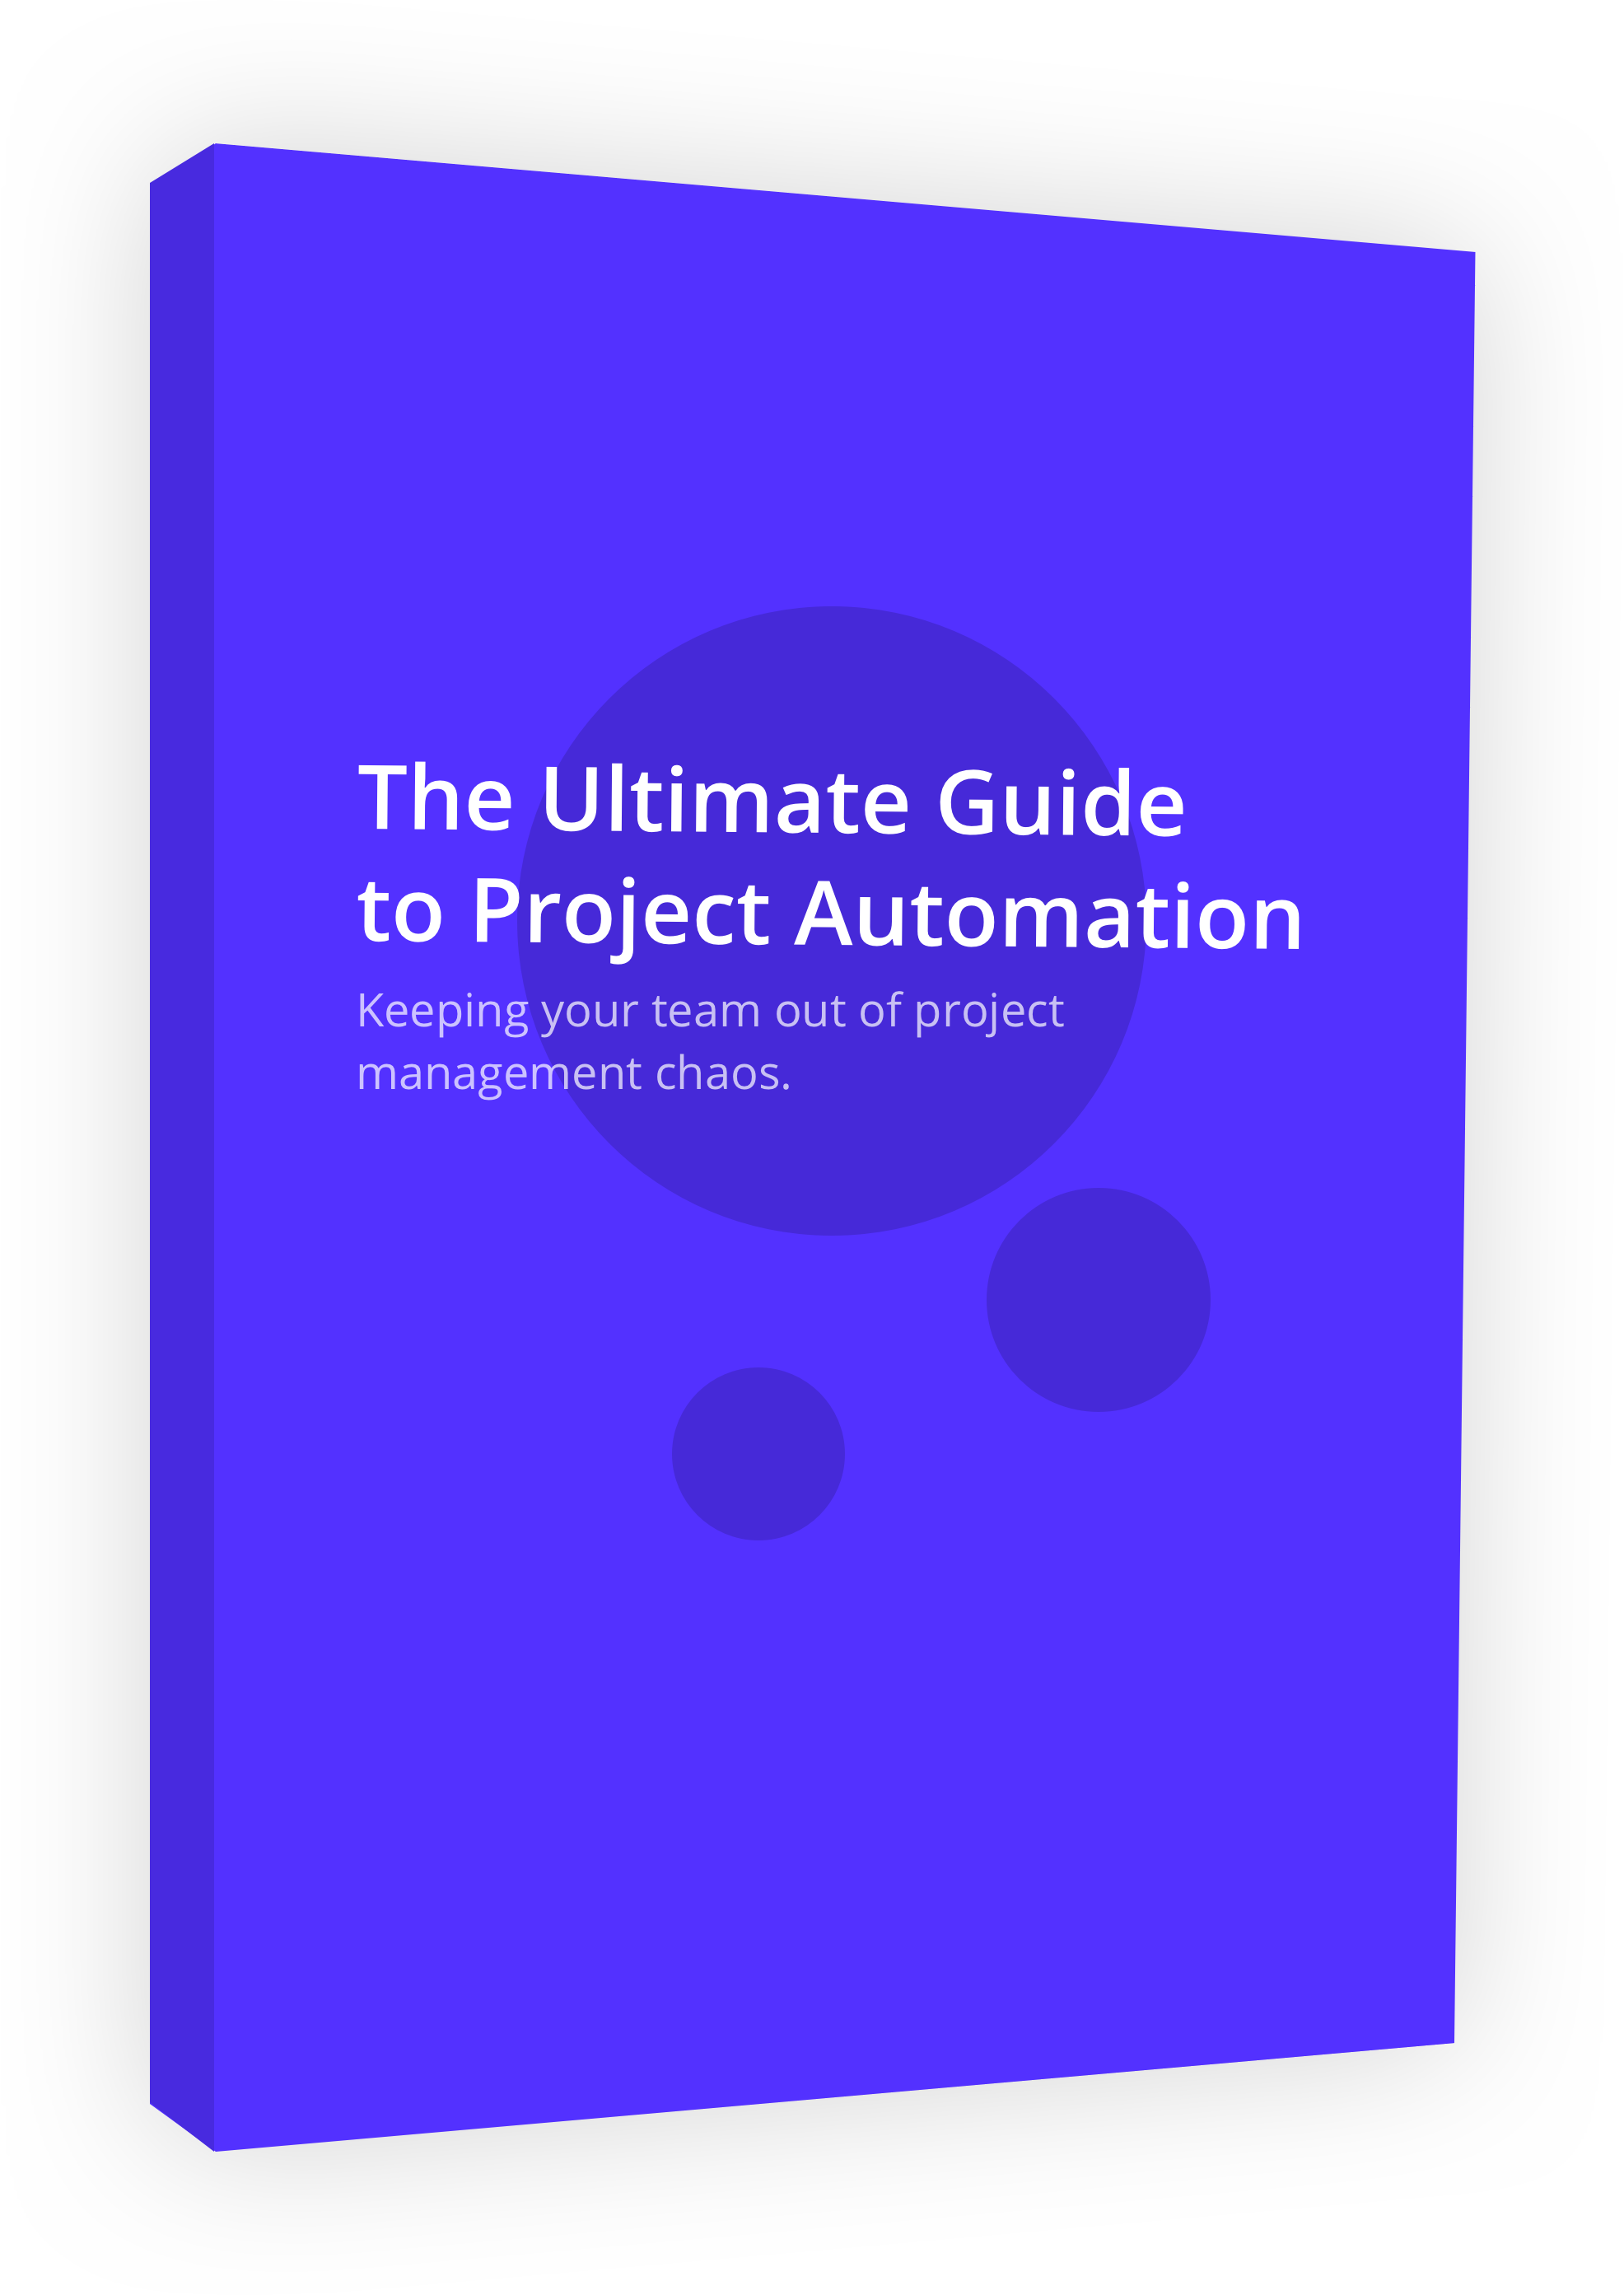 The Ultimate Guide to Project Automation